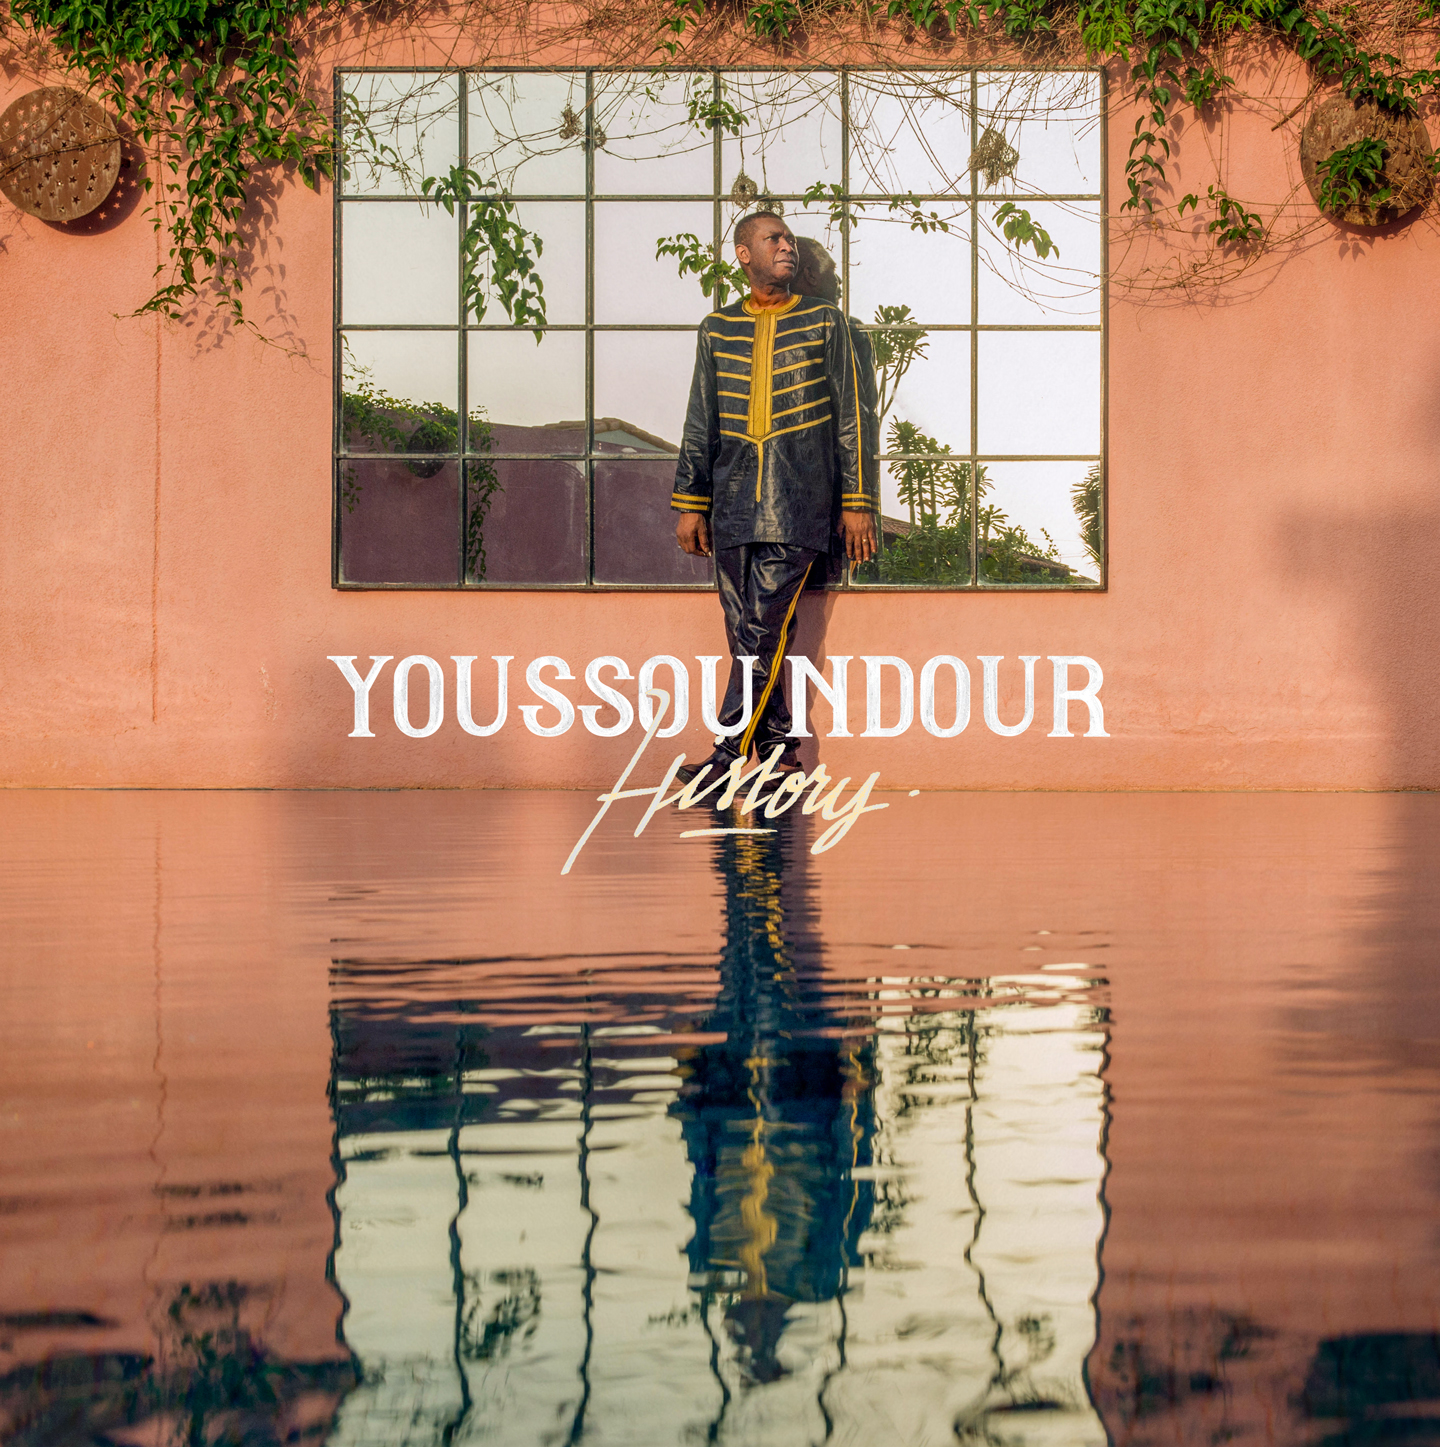 Youssou N'Dour's New Album Makes History Fresh